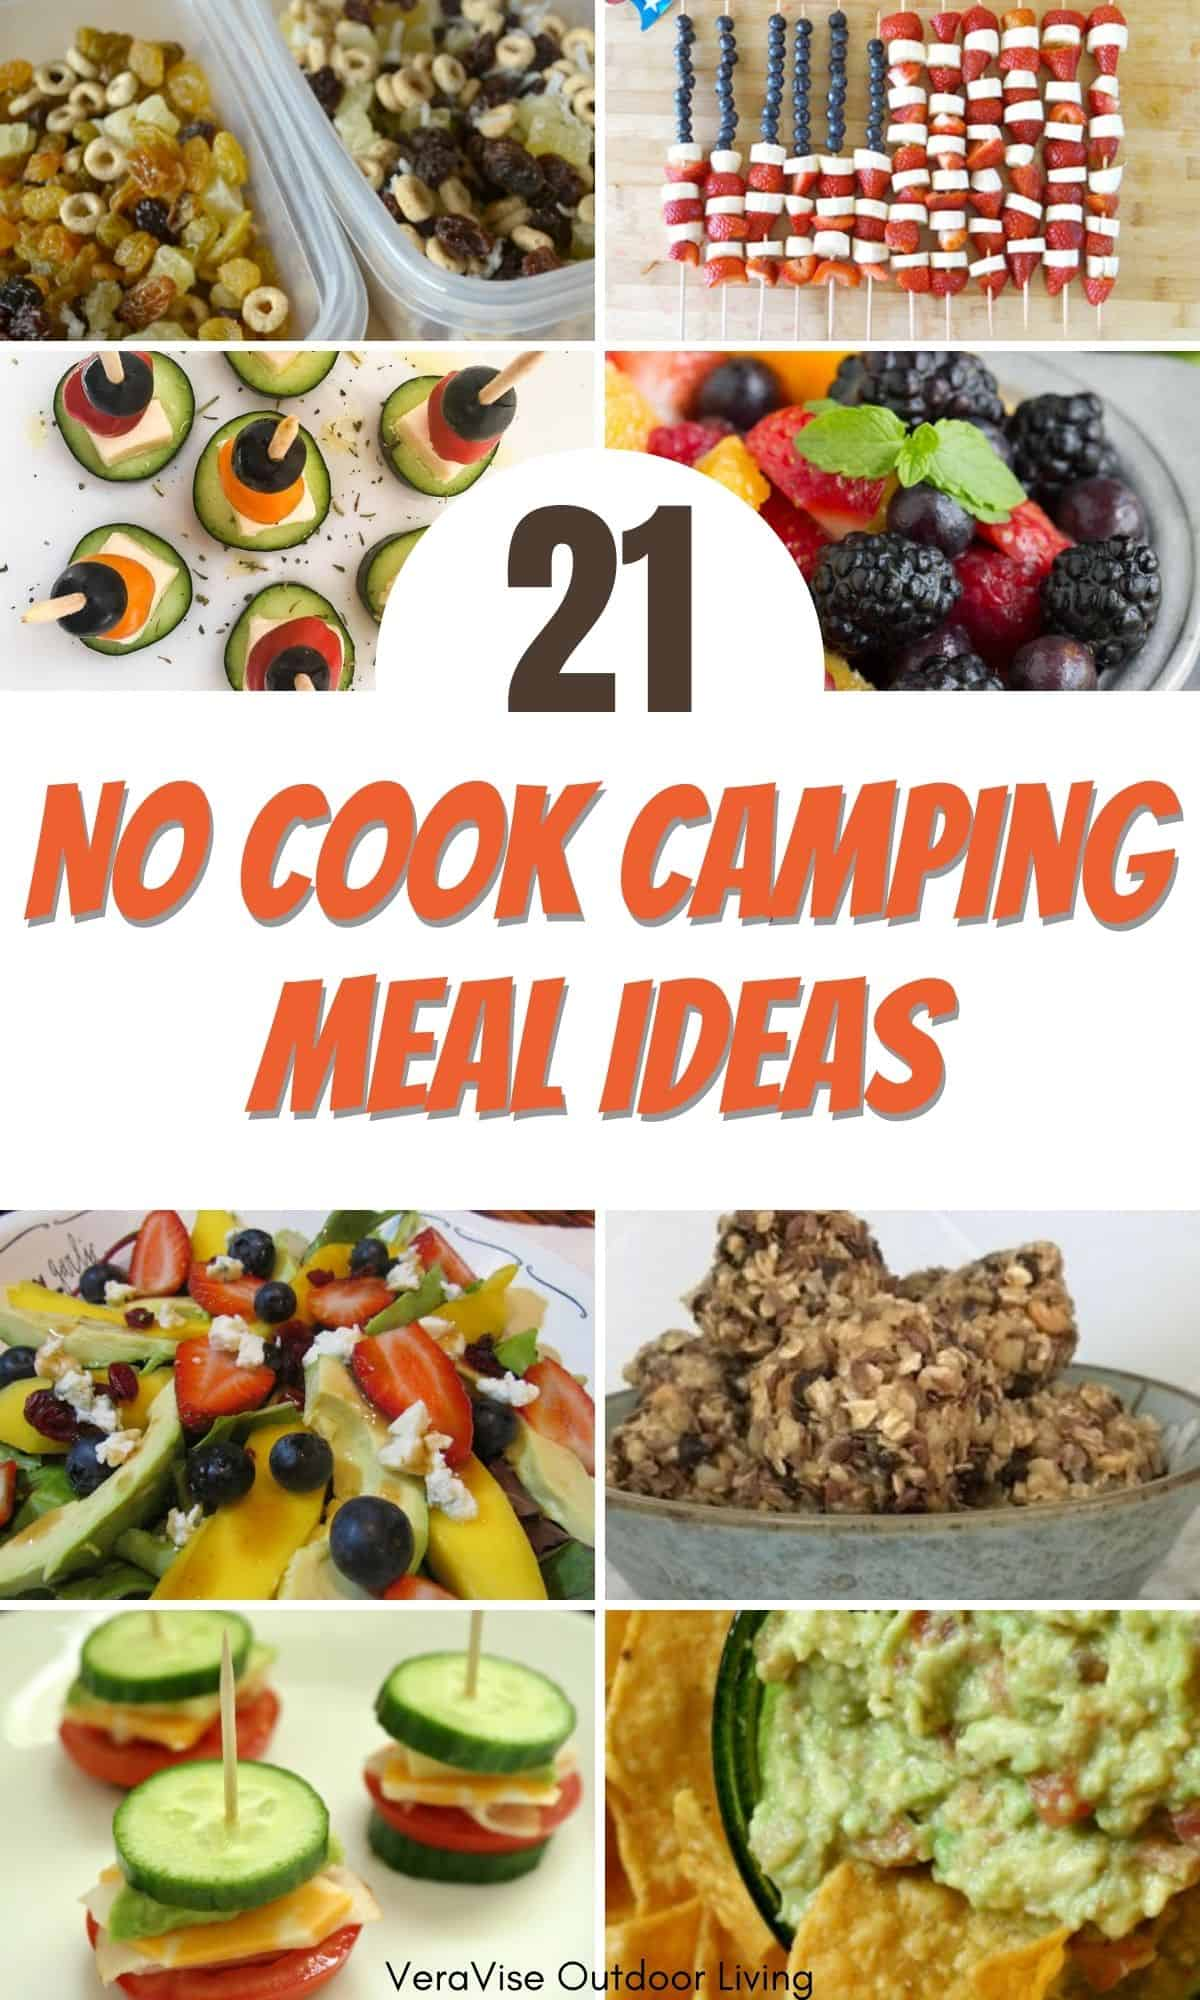 no cook camping meal ideas